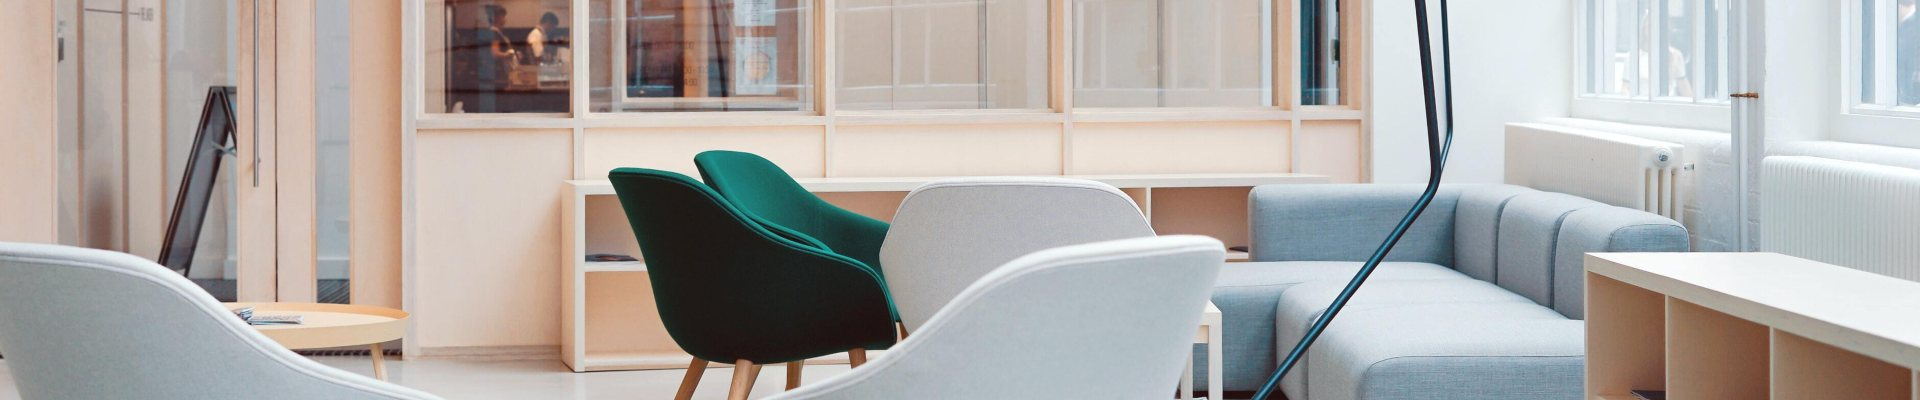 Coworkiong space with green and gray chairs